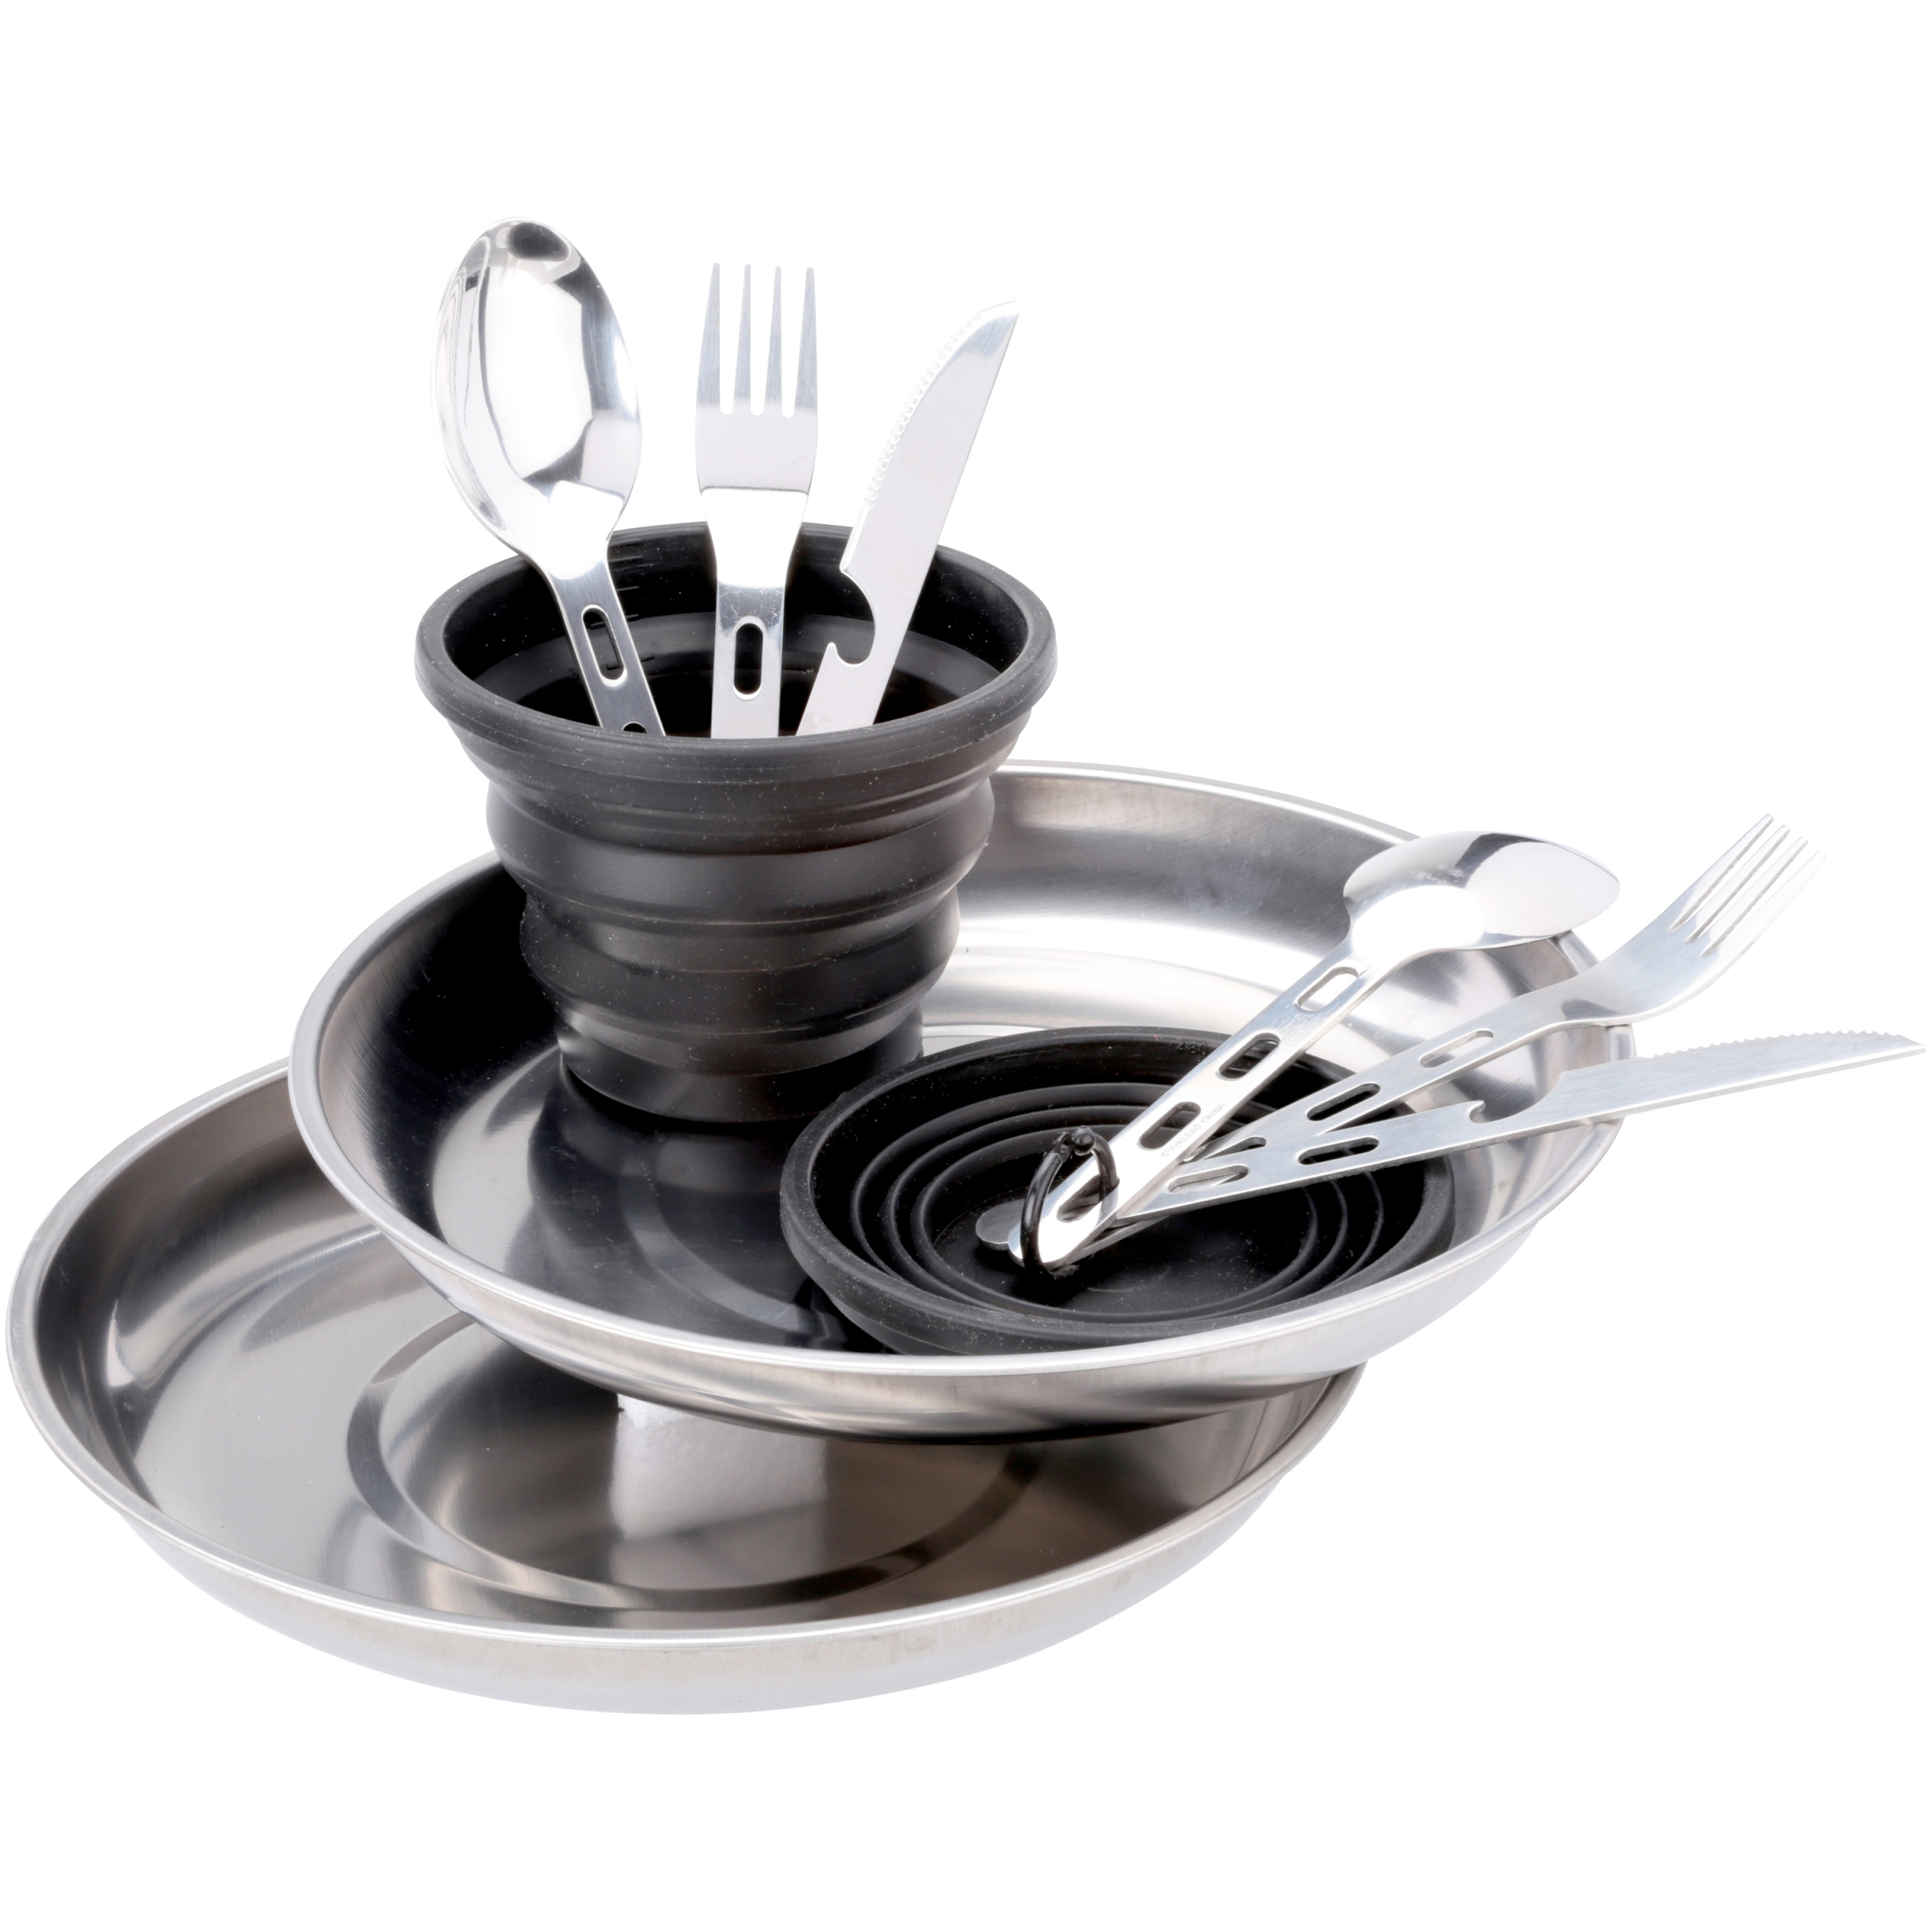 Ozark Trail 2-Person Stainless-Steel Table Setting 11 pc Pack by Wal-Mart Stores, Inc.